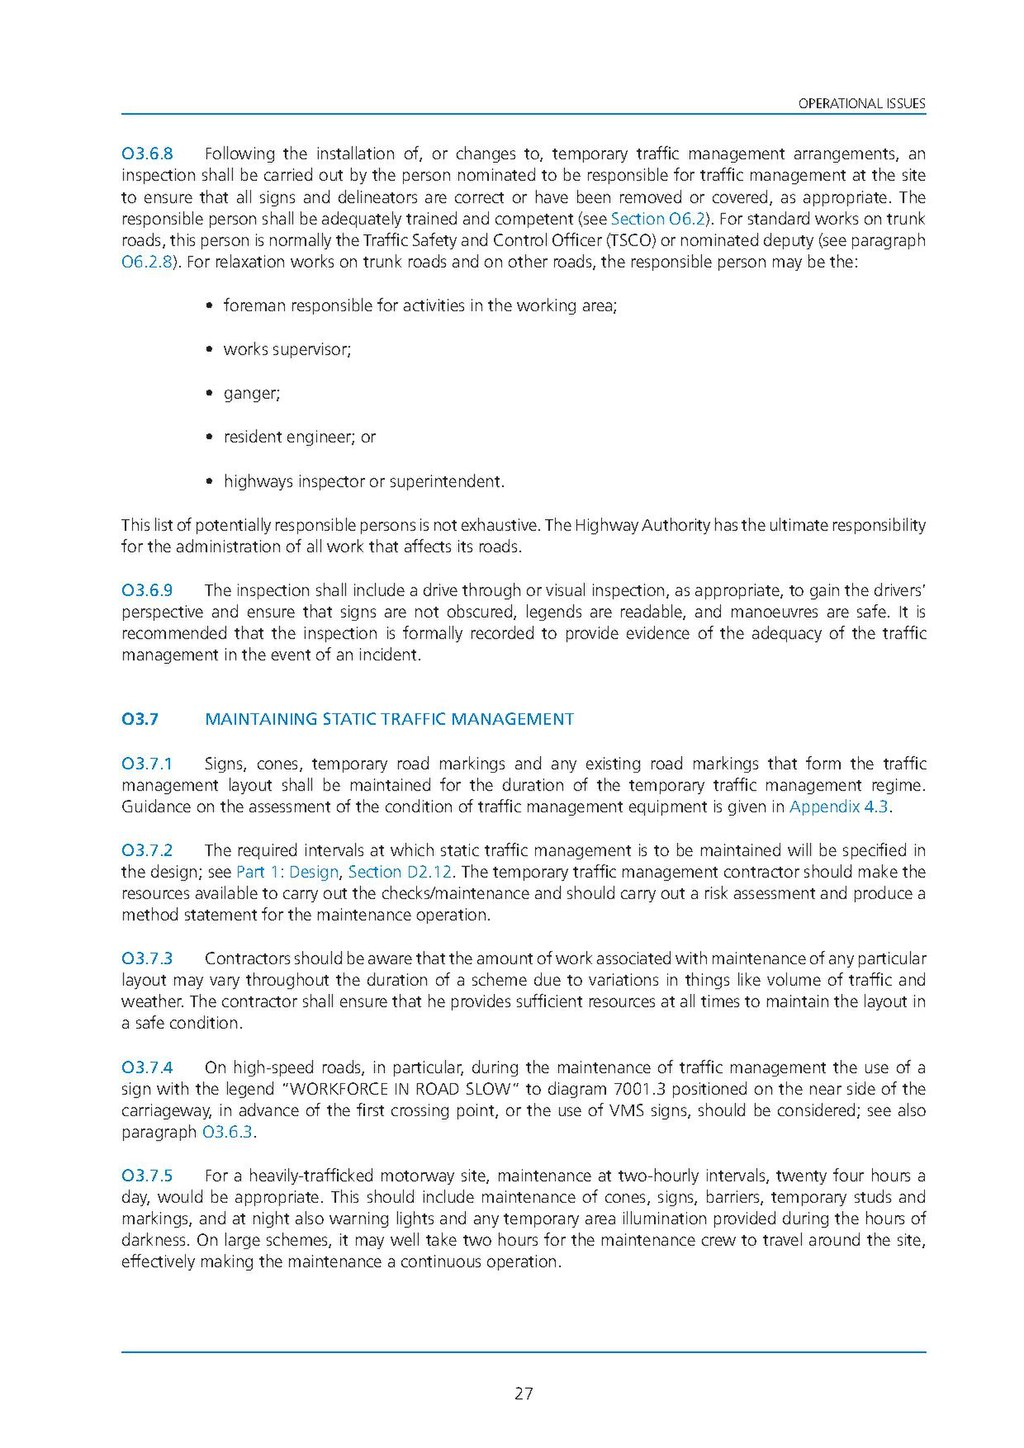 traffic signs manual chapter 8 part 2